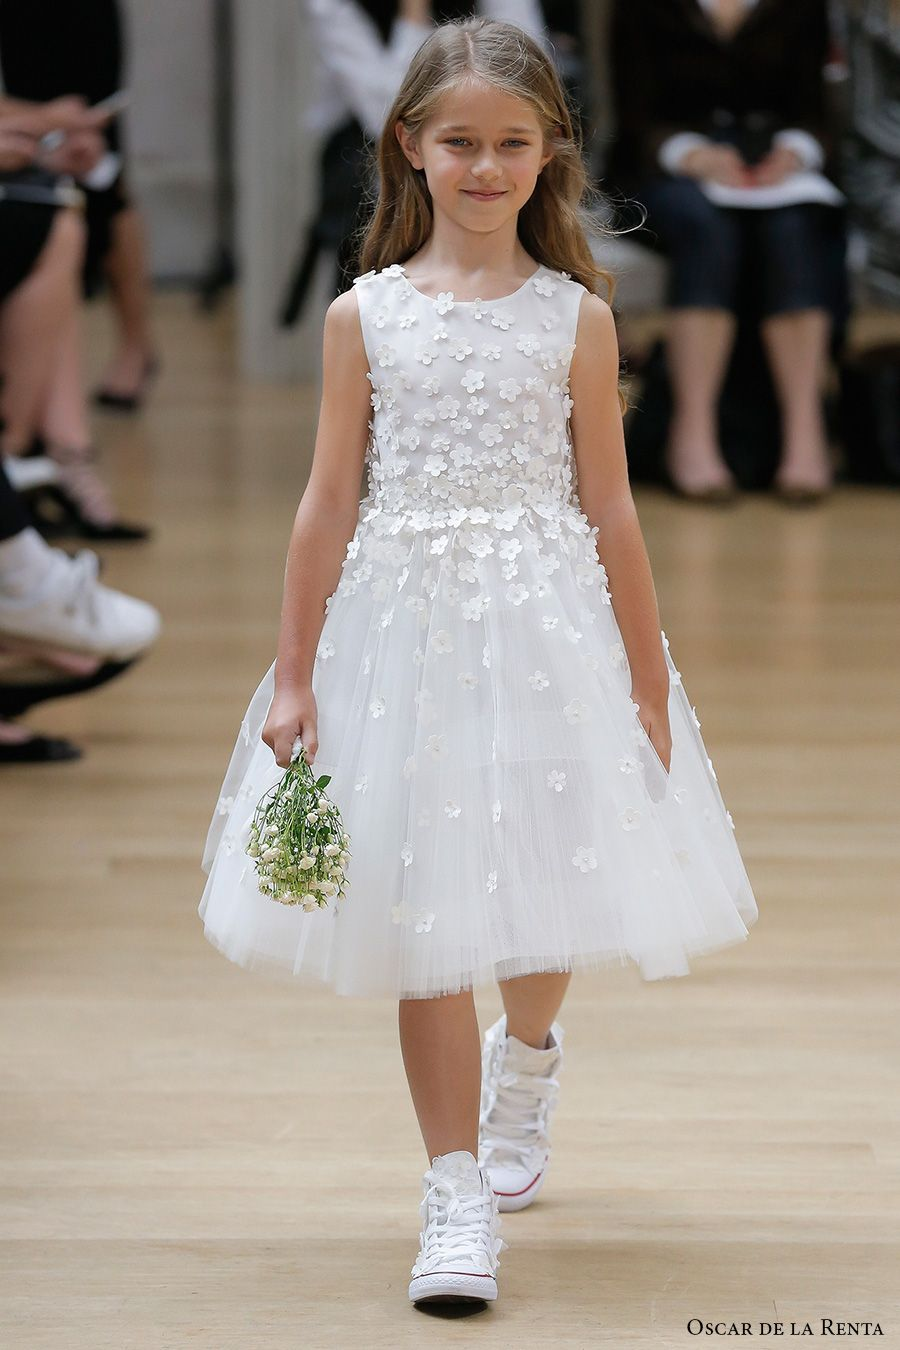 Oscar De La Renta Spring 2018 Wedding Dresses New York Bridal